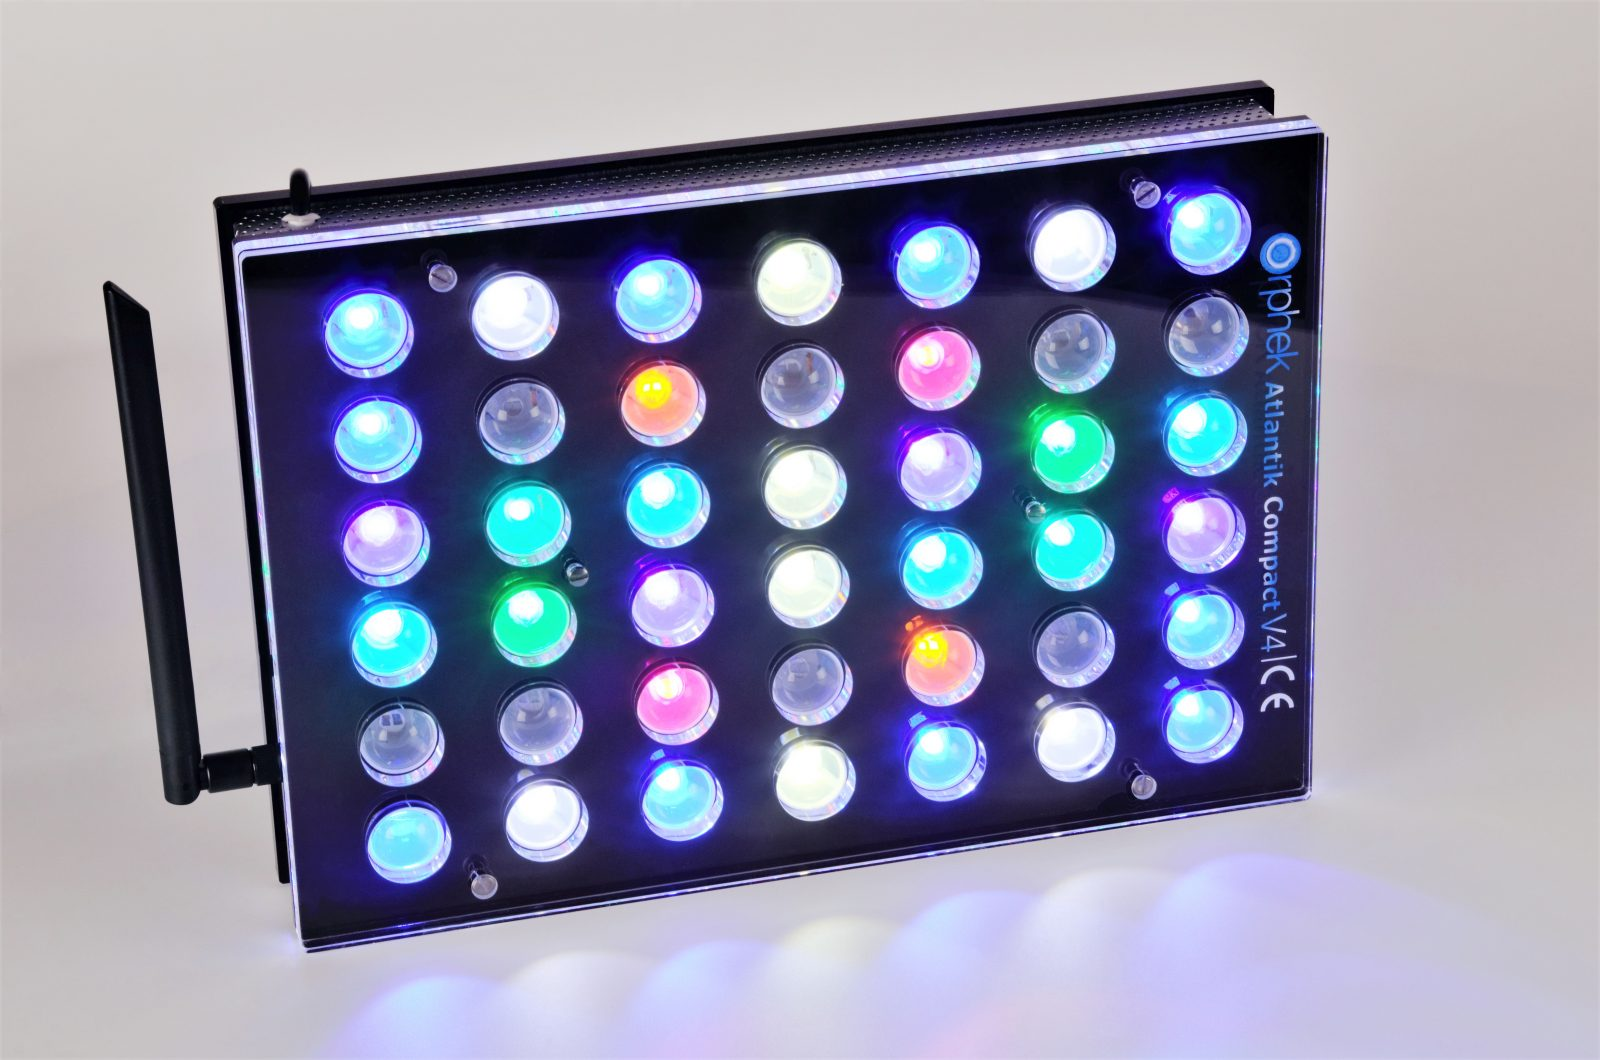 Orphek-Aquarium-LED-Lighting-Atlantik -Compact-V4-licht -on-kanaal 1 + 2 + 4